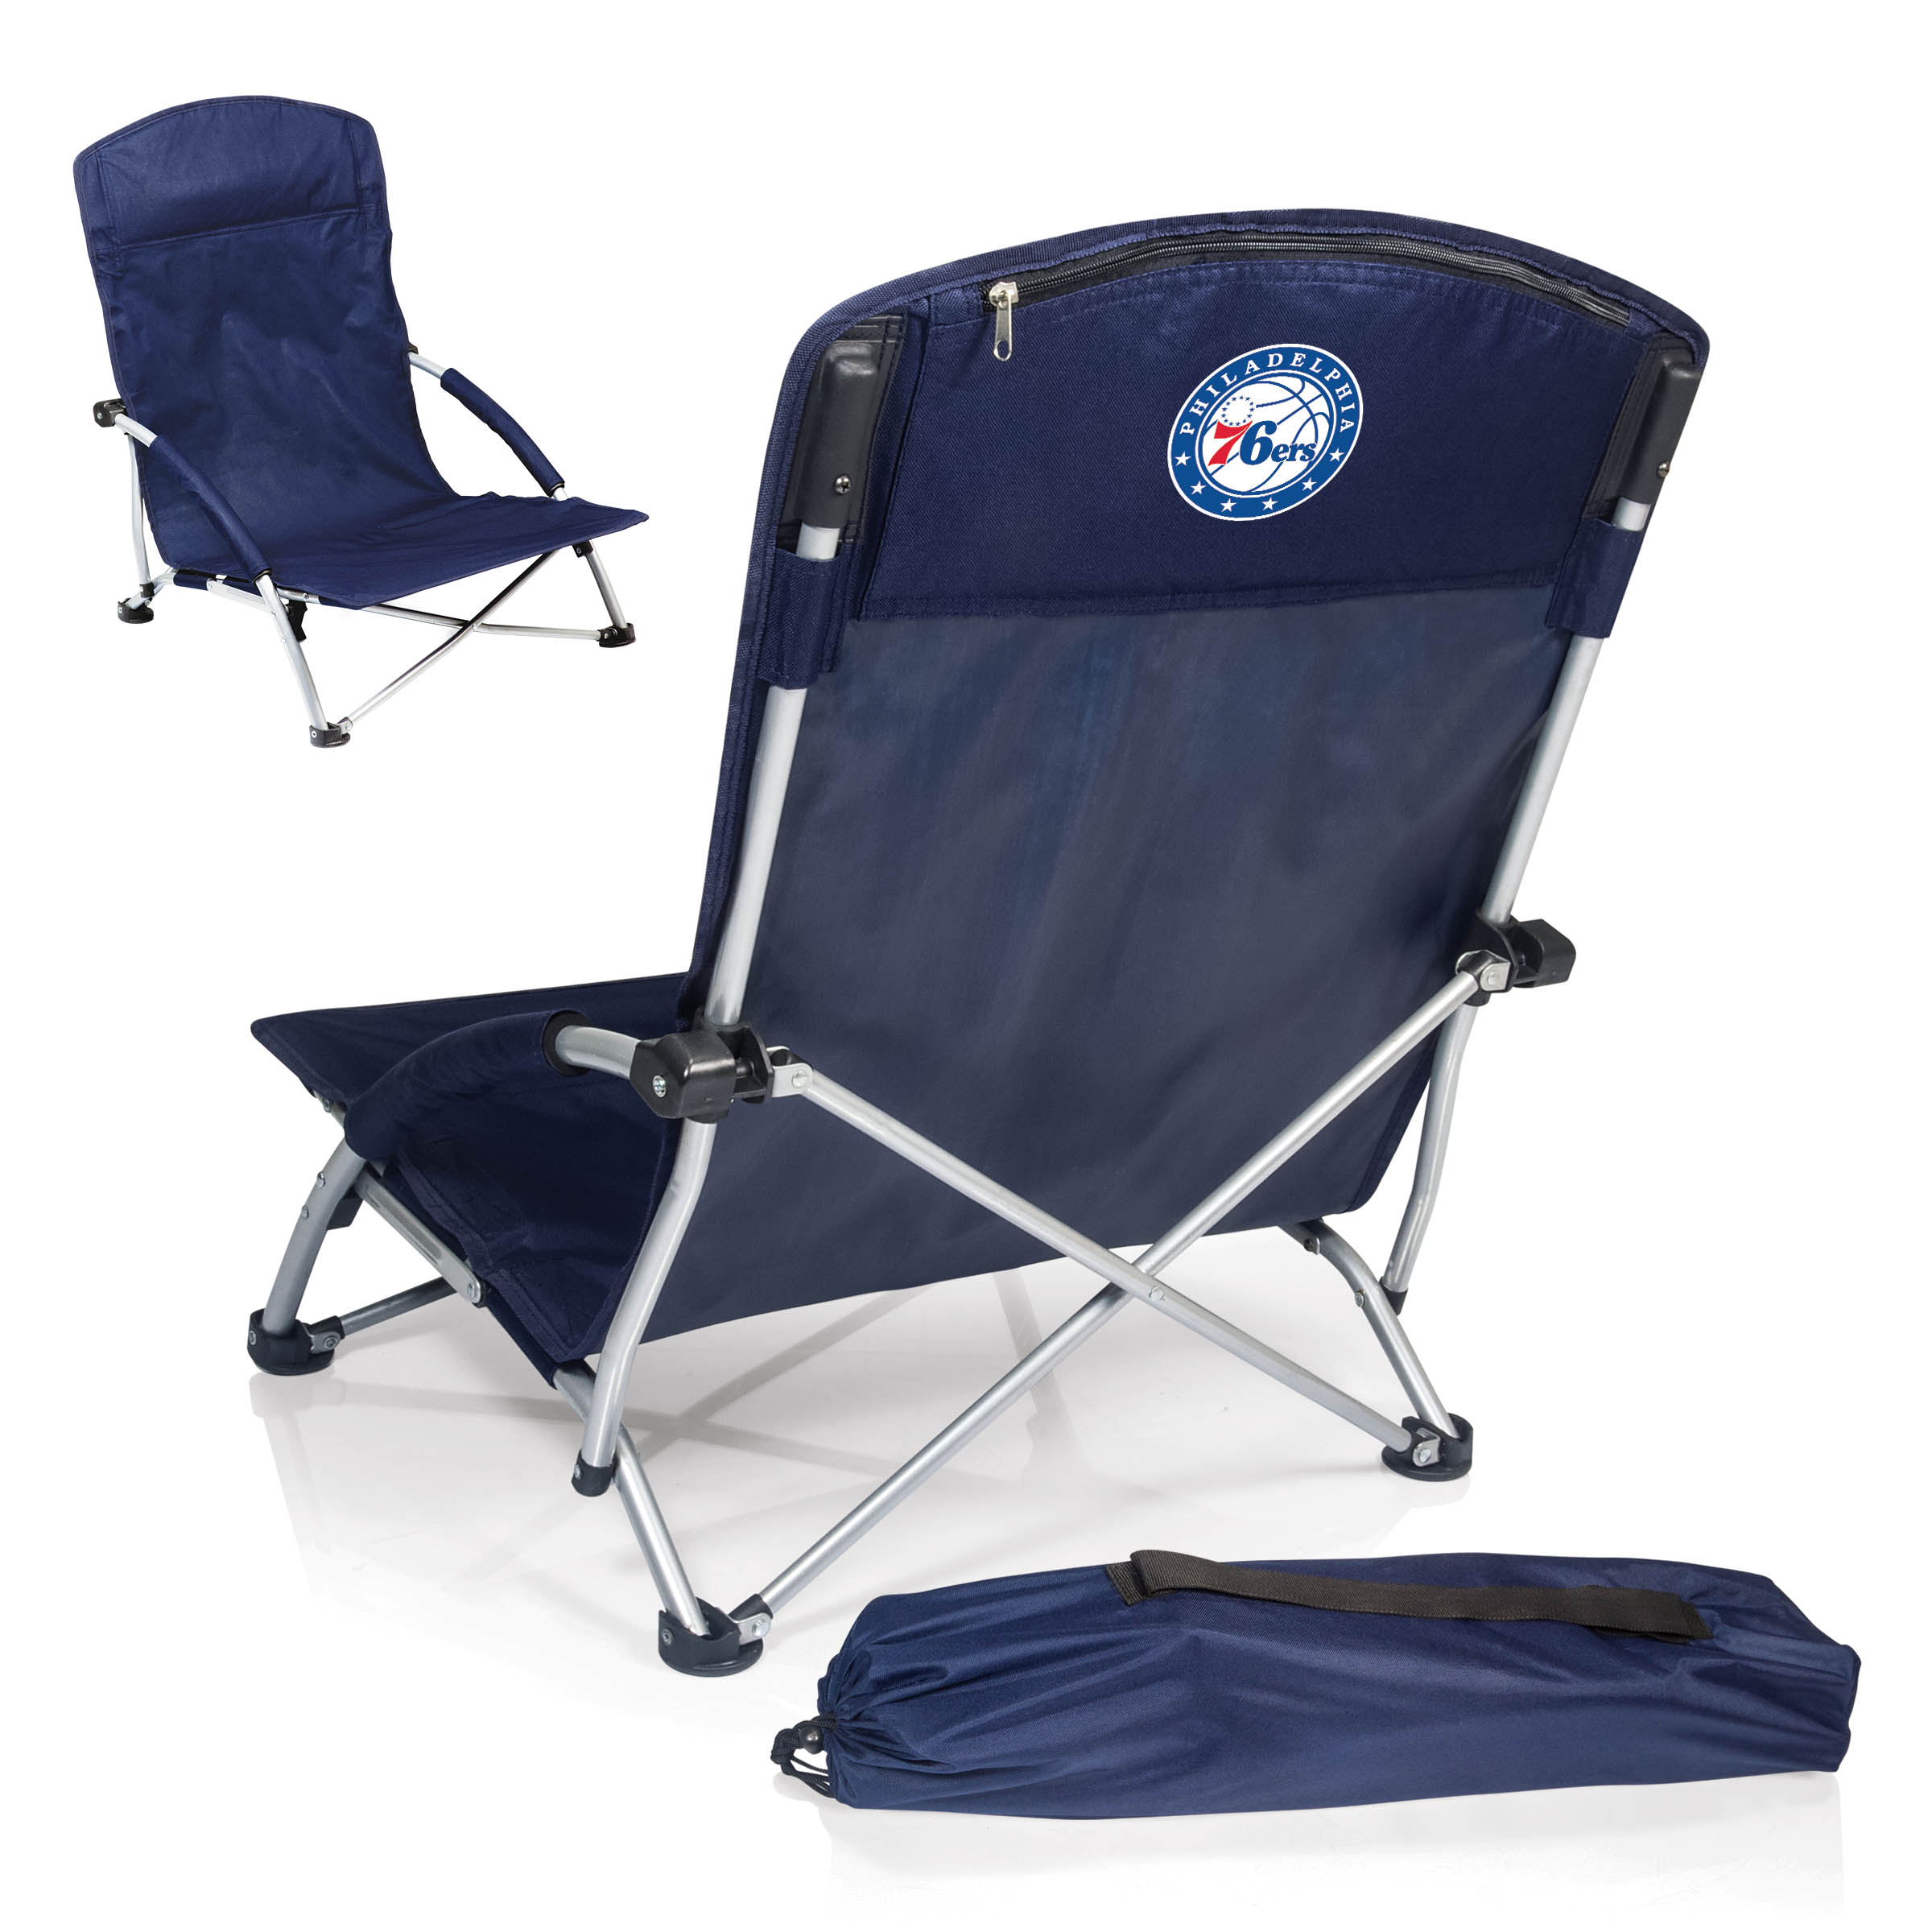 Portable Beach Chair Philadelphia 76ers Navy Malibu Picnic Tote By Picnic Time